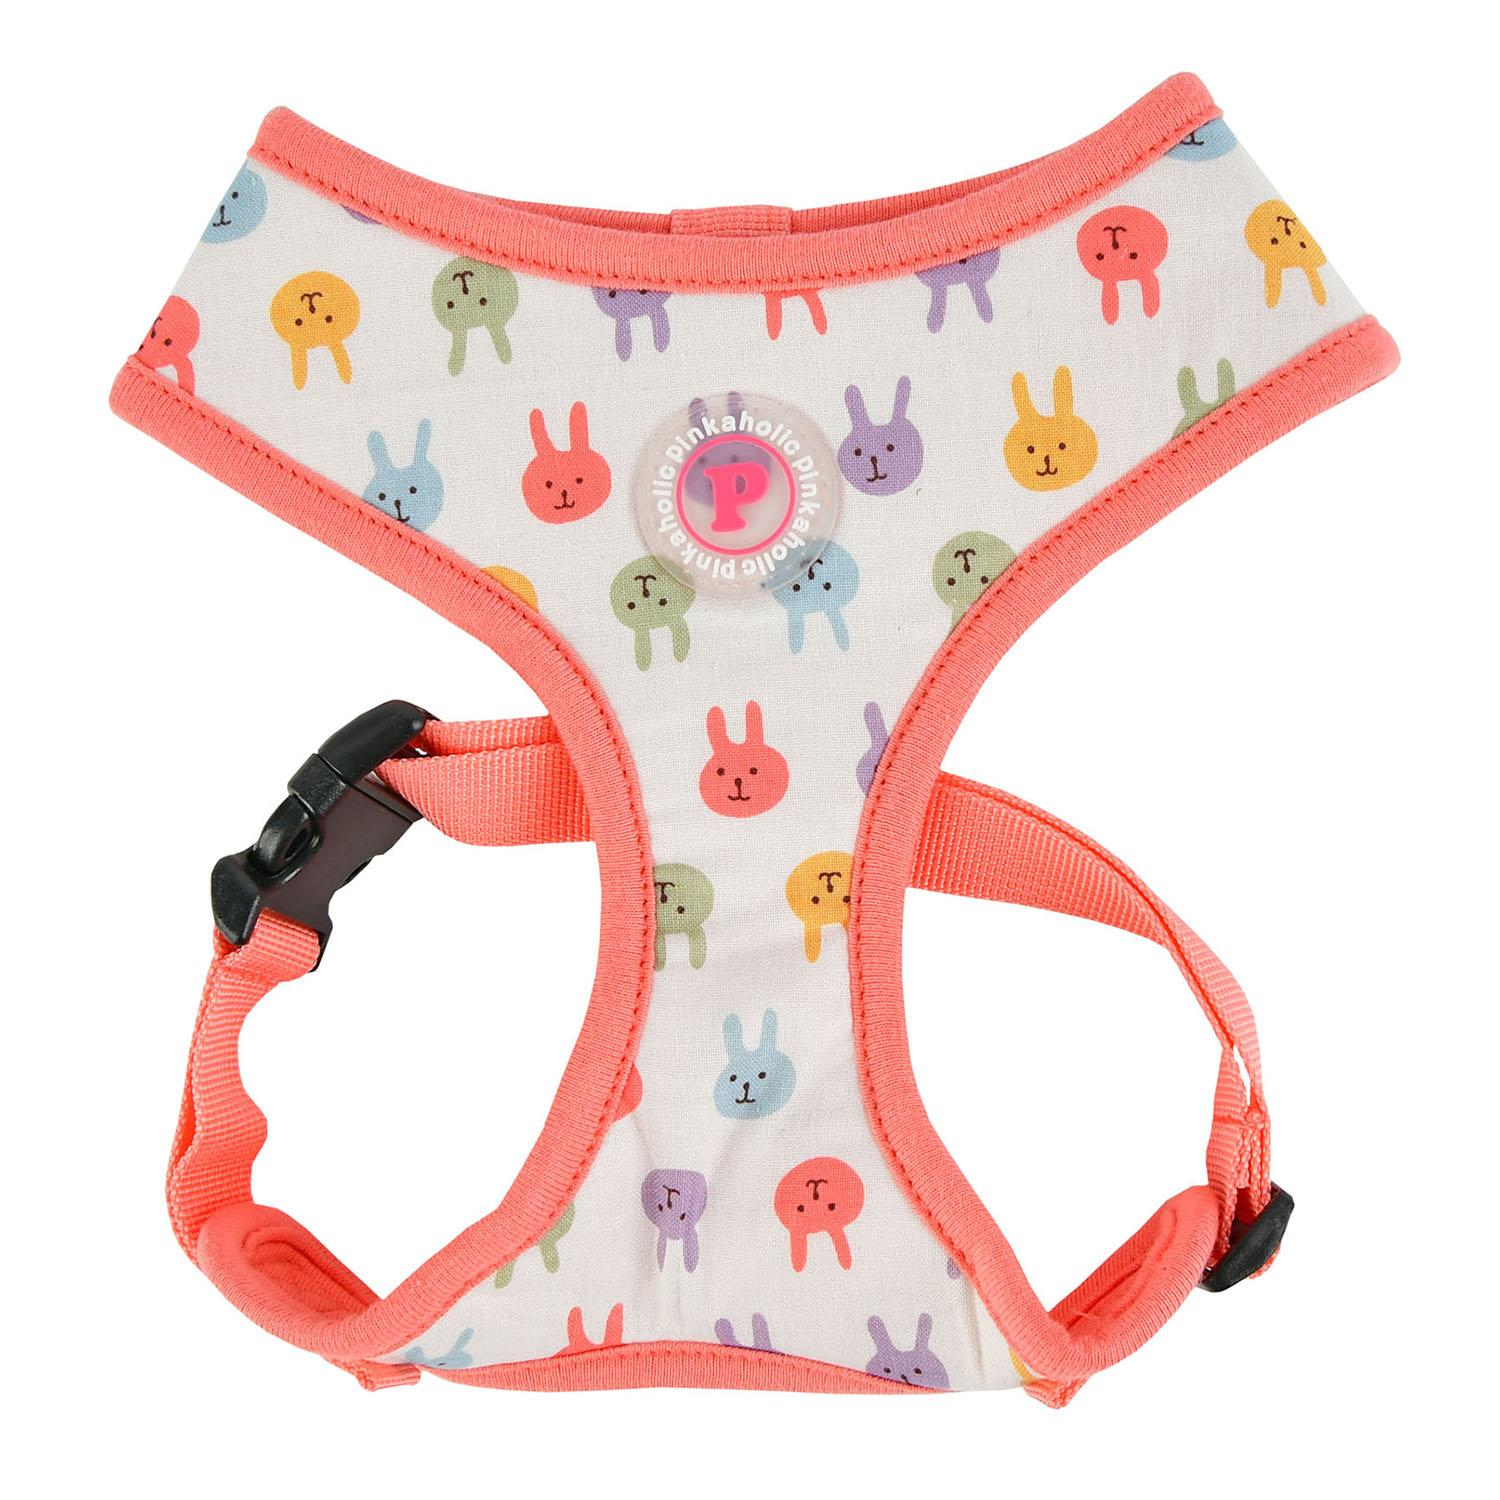 Hopper Basic Style Dog Harness by Pinkaholic - Indian Pink